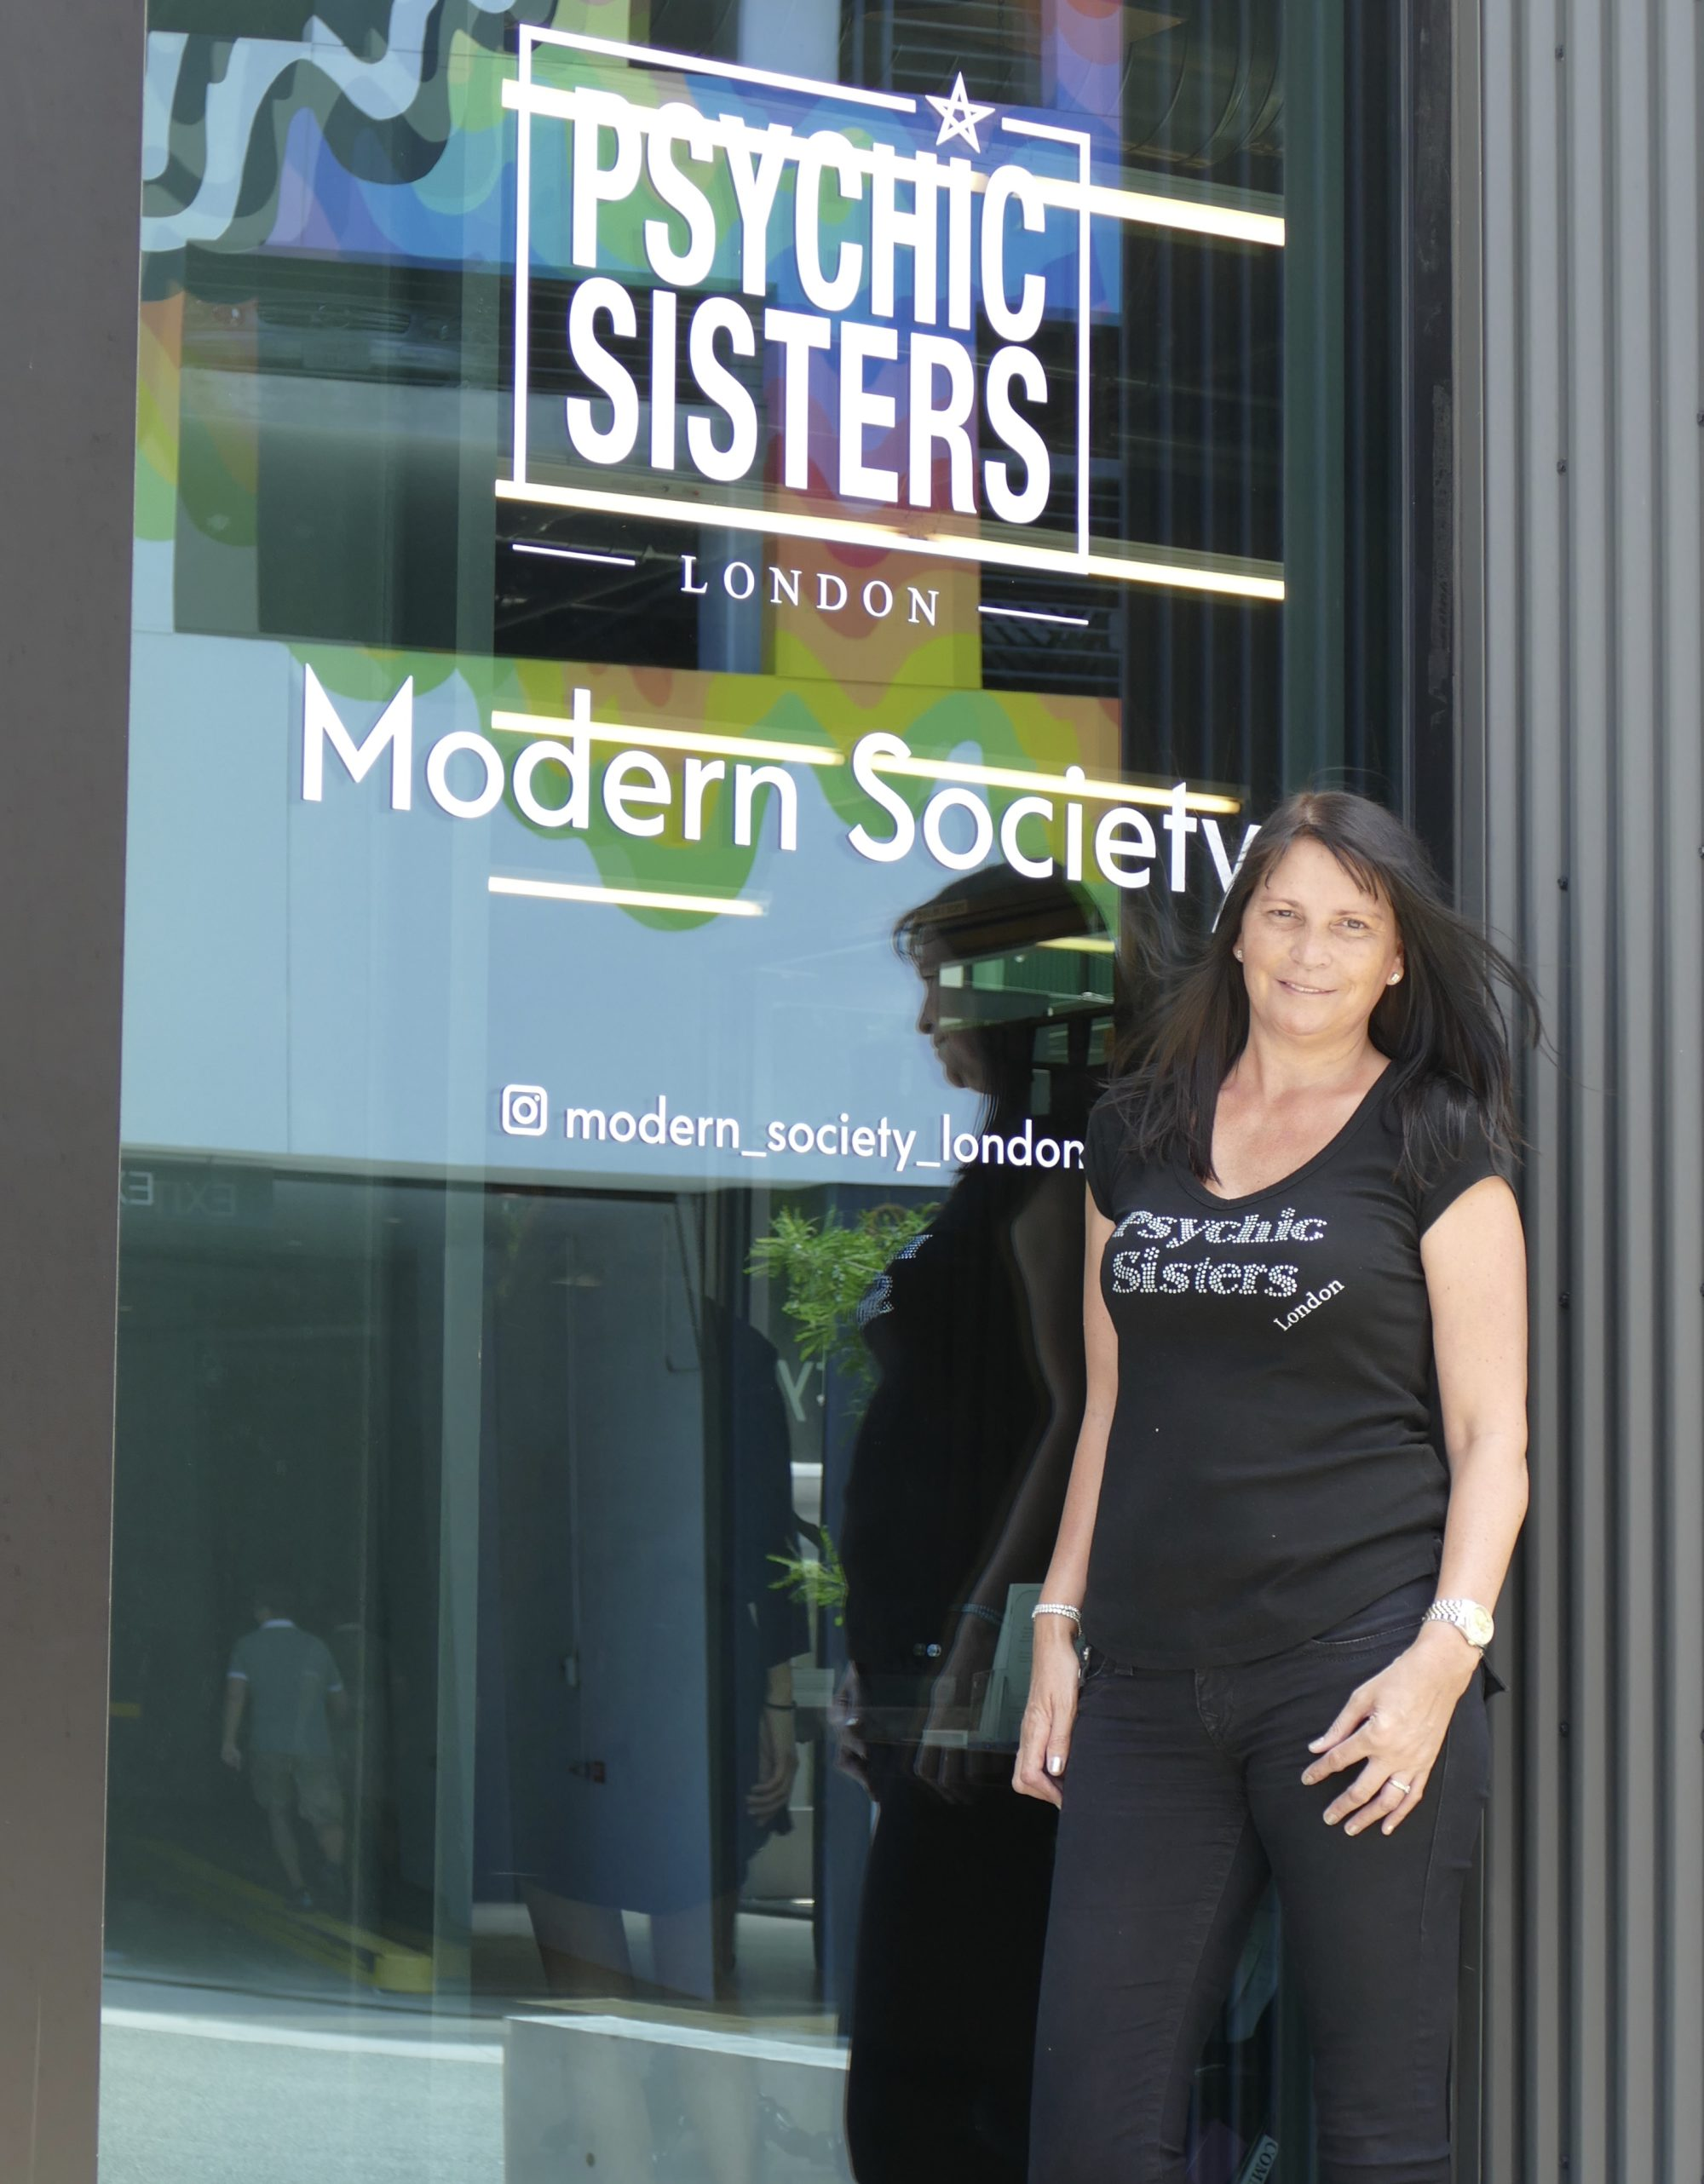 Psychic Sisters New Boutique In Los Angeles Jayne Wallace And The